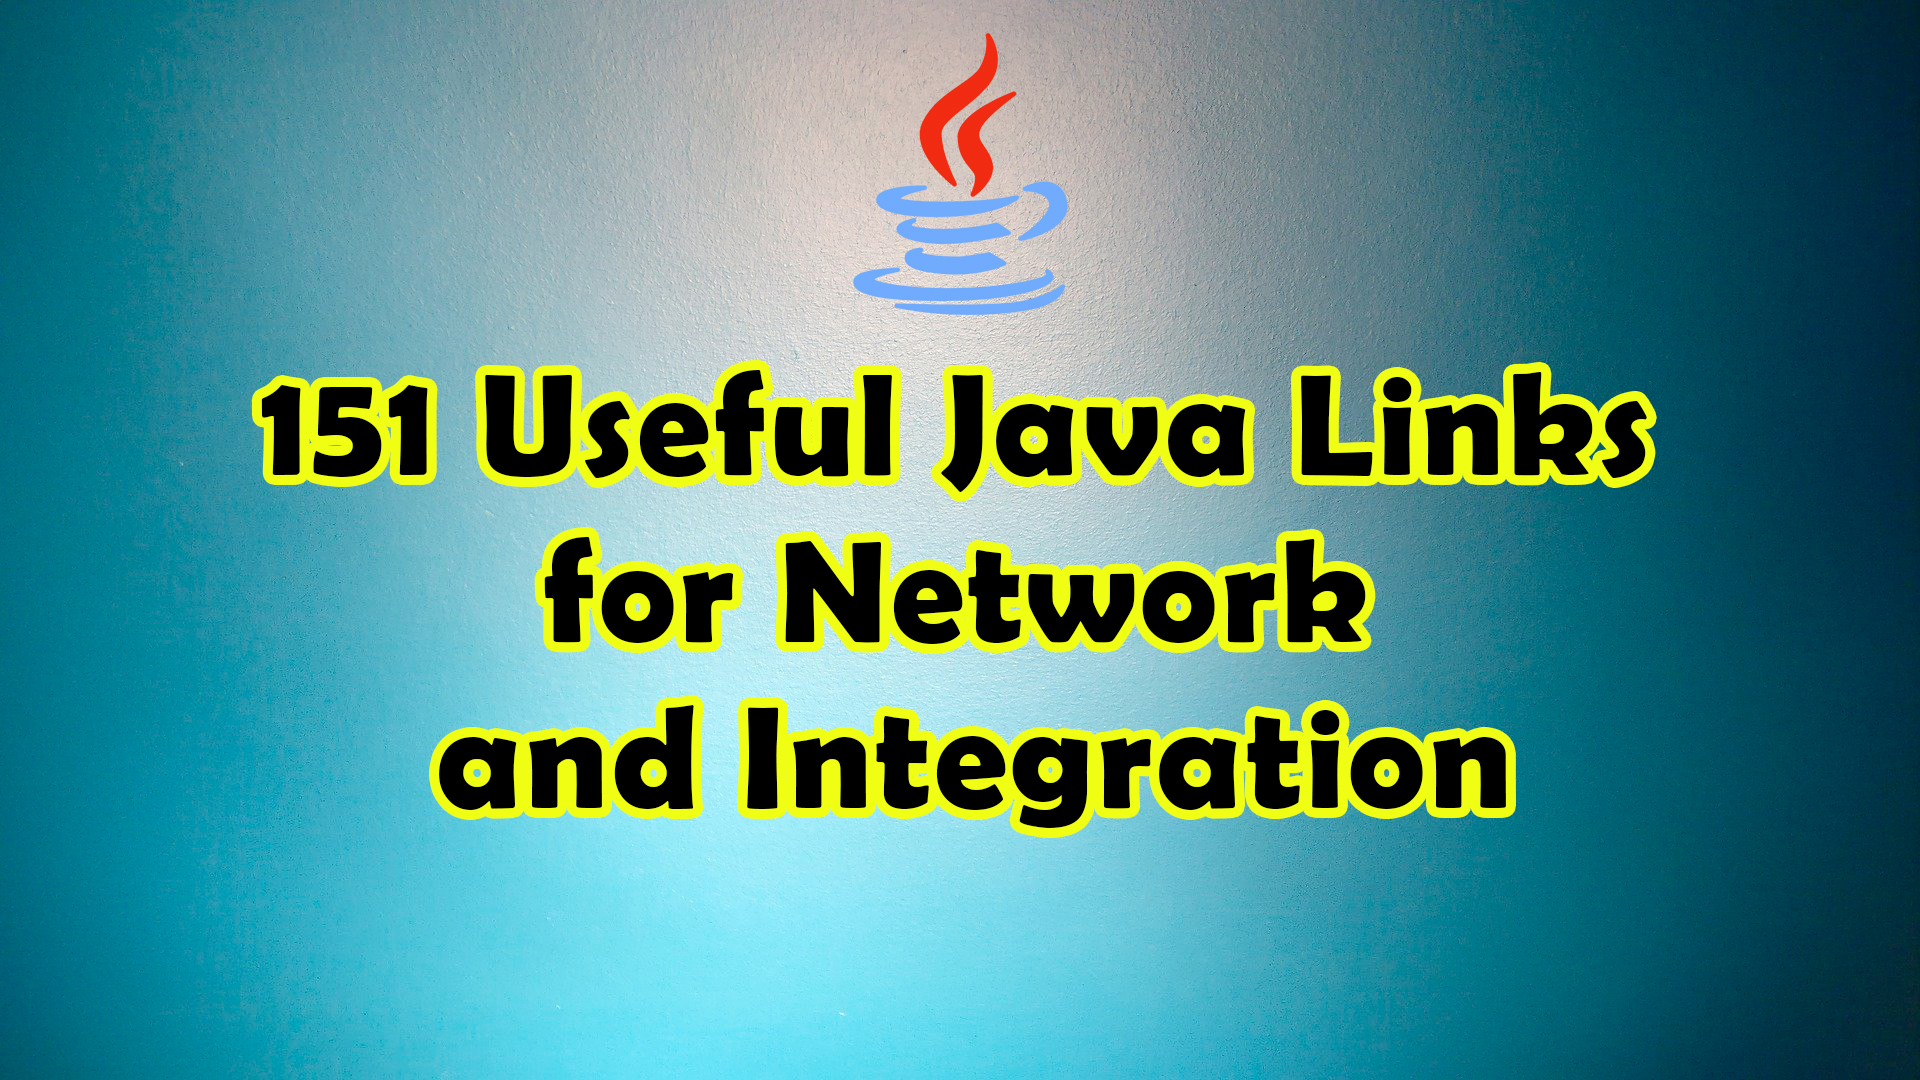 More Than 151 Useful Java Links for Network and Integration